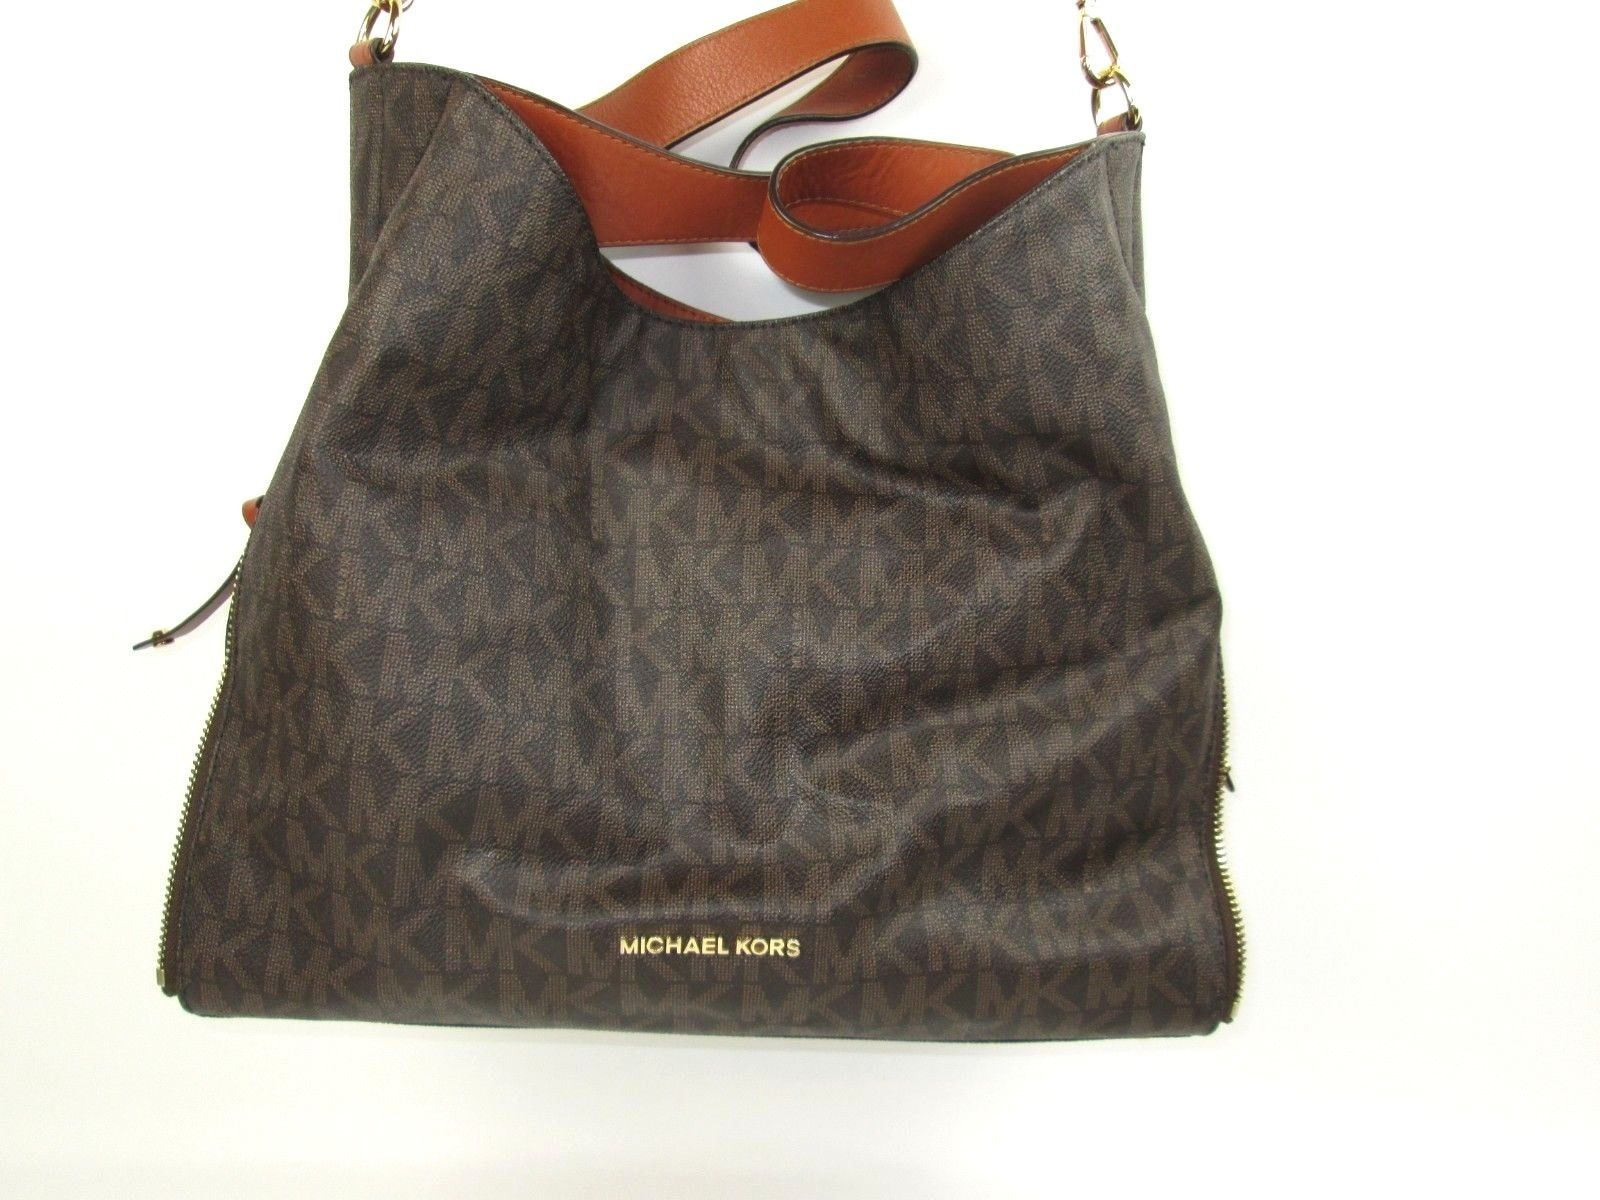 8e6c4af6db4f 57. 57. Previous. MICHAEL KORS Signature Devon Mocha Large Shoulder Tote  Bag Purse Brown Wonderful